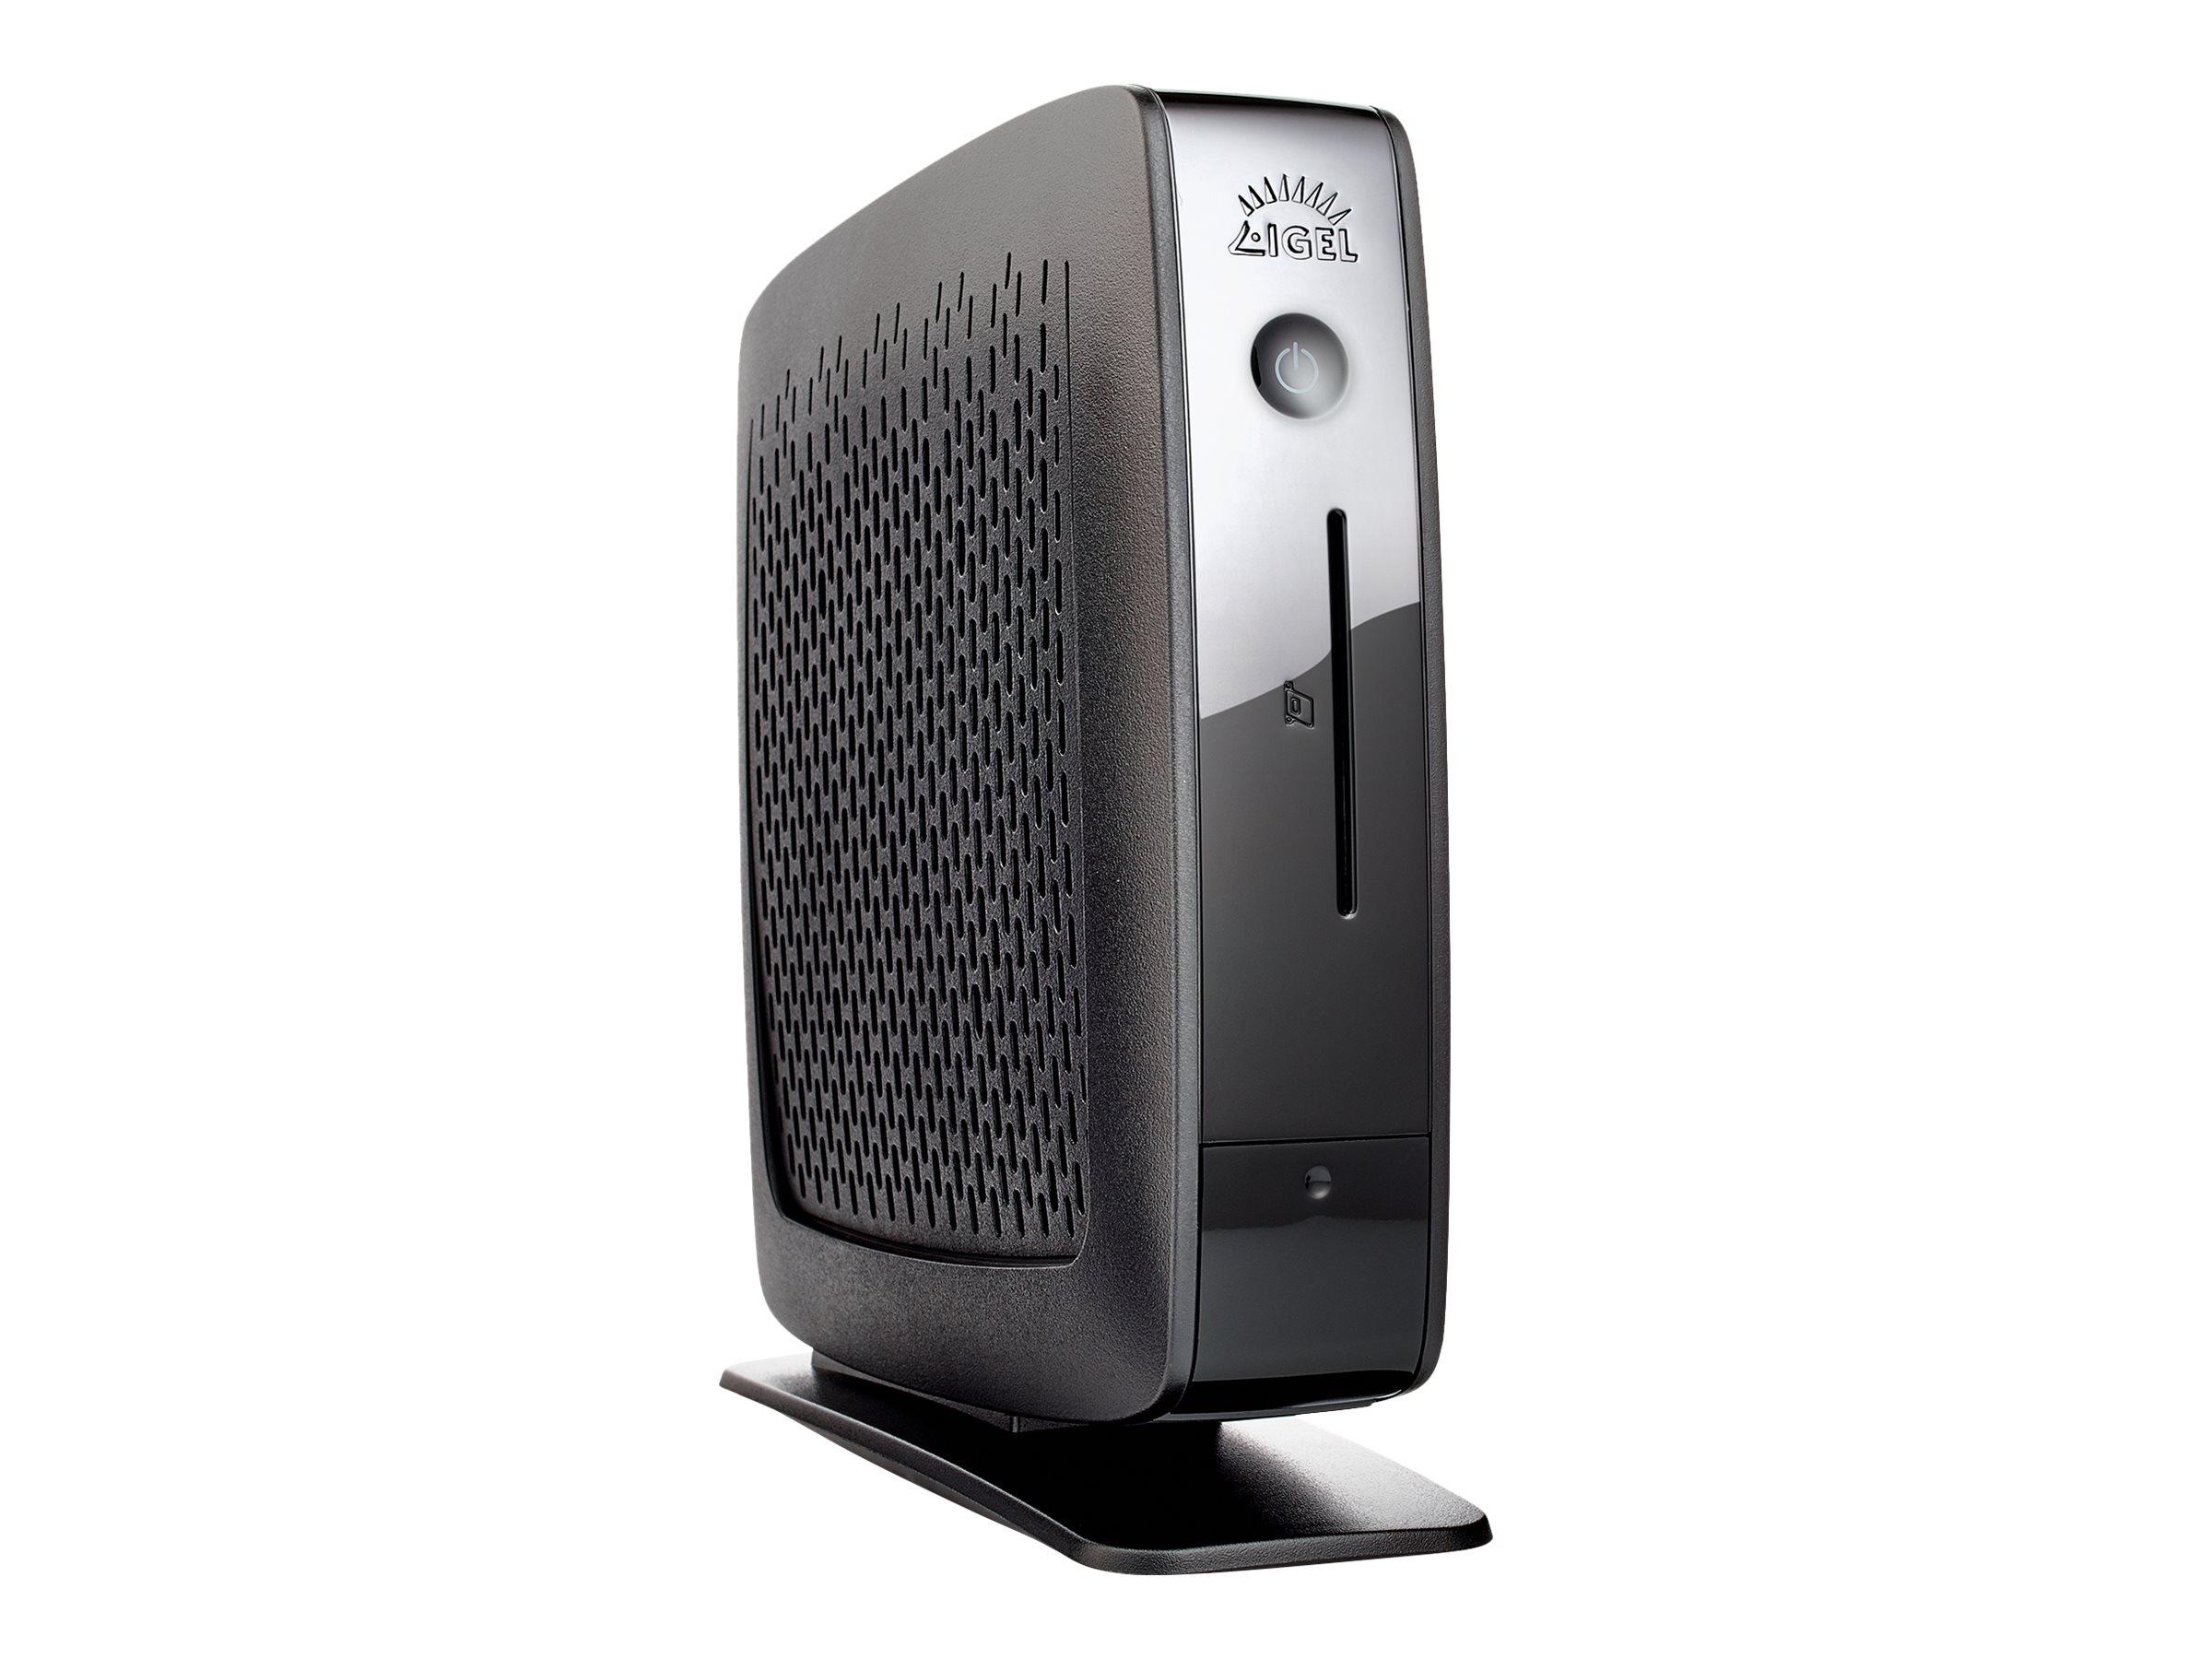 IGEL Universal Desktop UD3-LX - DT - GX-412HC 1.2 GHz - 2 GB - flash 4 GB